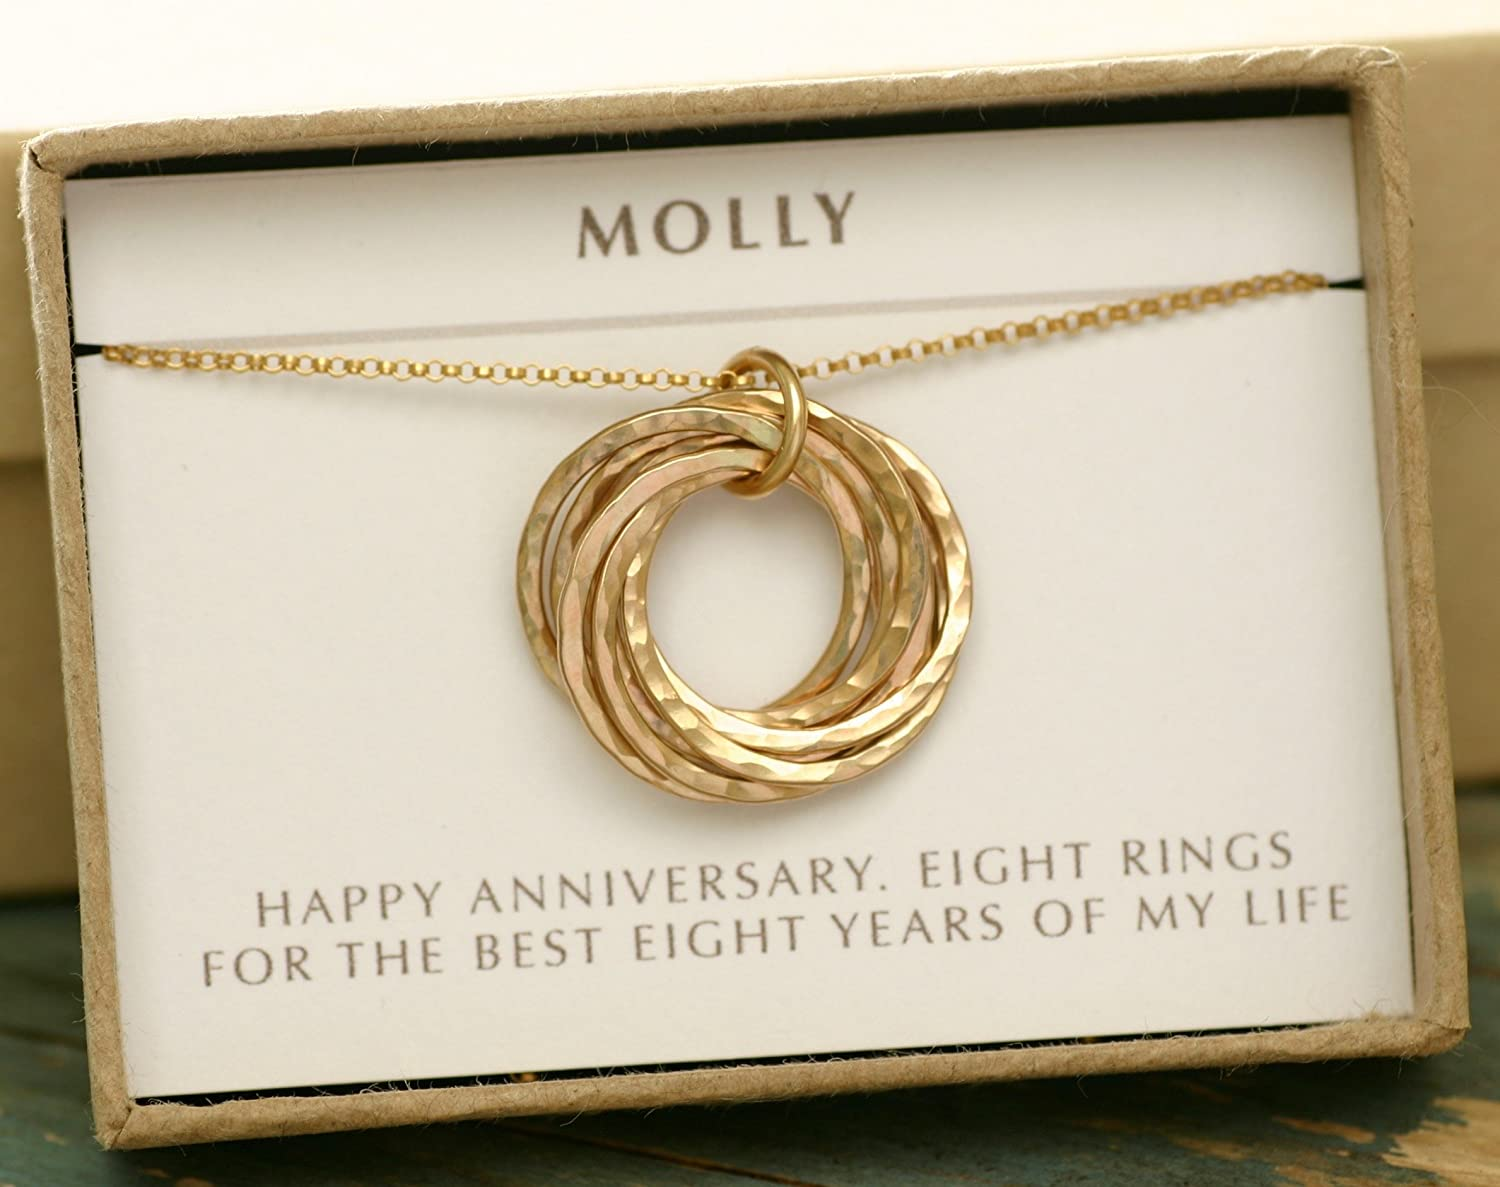 9 Best 8th Wedding Anniversary Gifts And Ideas With Images